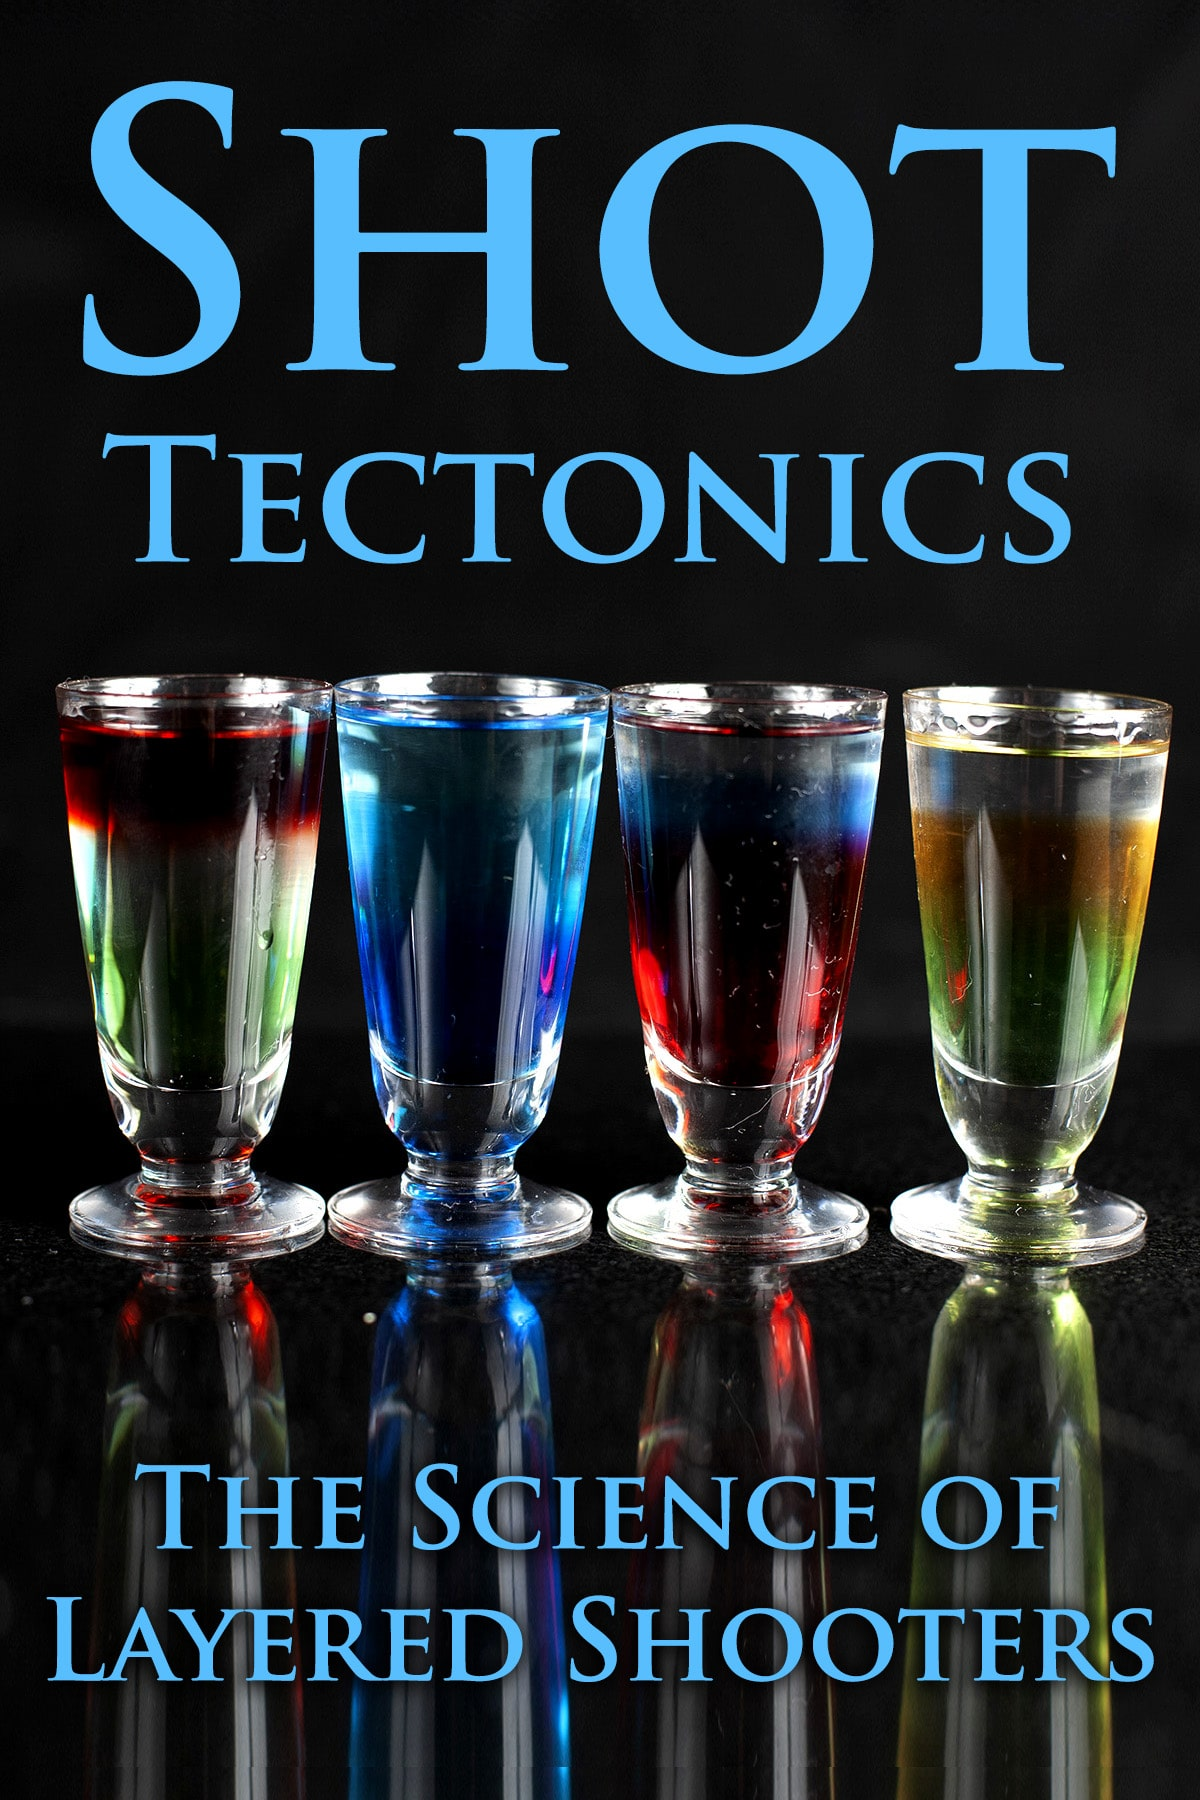 A line of multicoloured layered shooters in stemmed shot glasses. Blue text overlay says shot tectonics, the science of layered shooters.